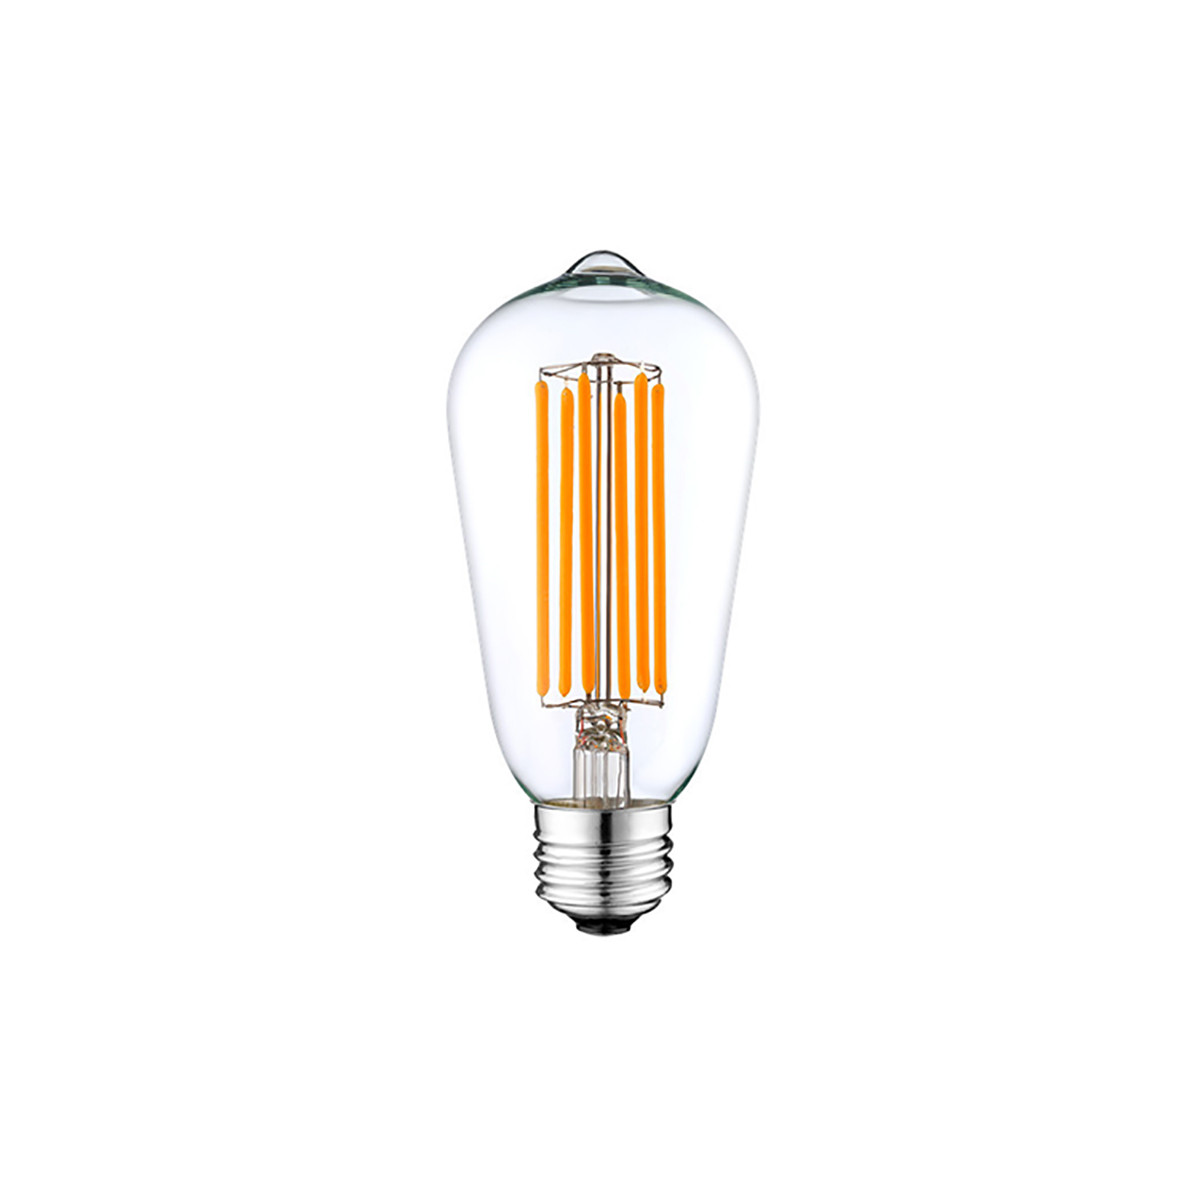 6w Filament Led T Shape Light Bulb Light St48 Chandelier Bulb With E26 Base 60w Equivalent